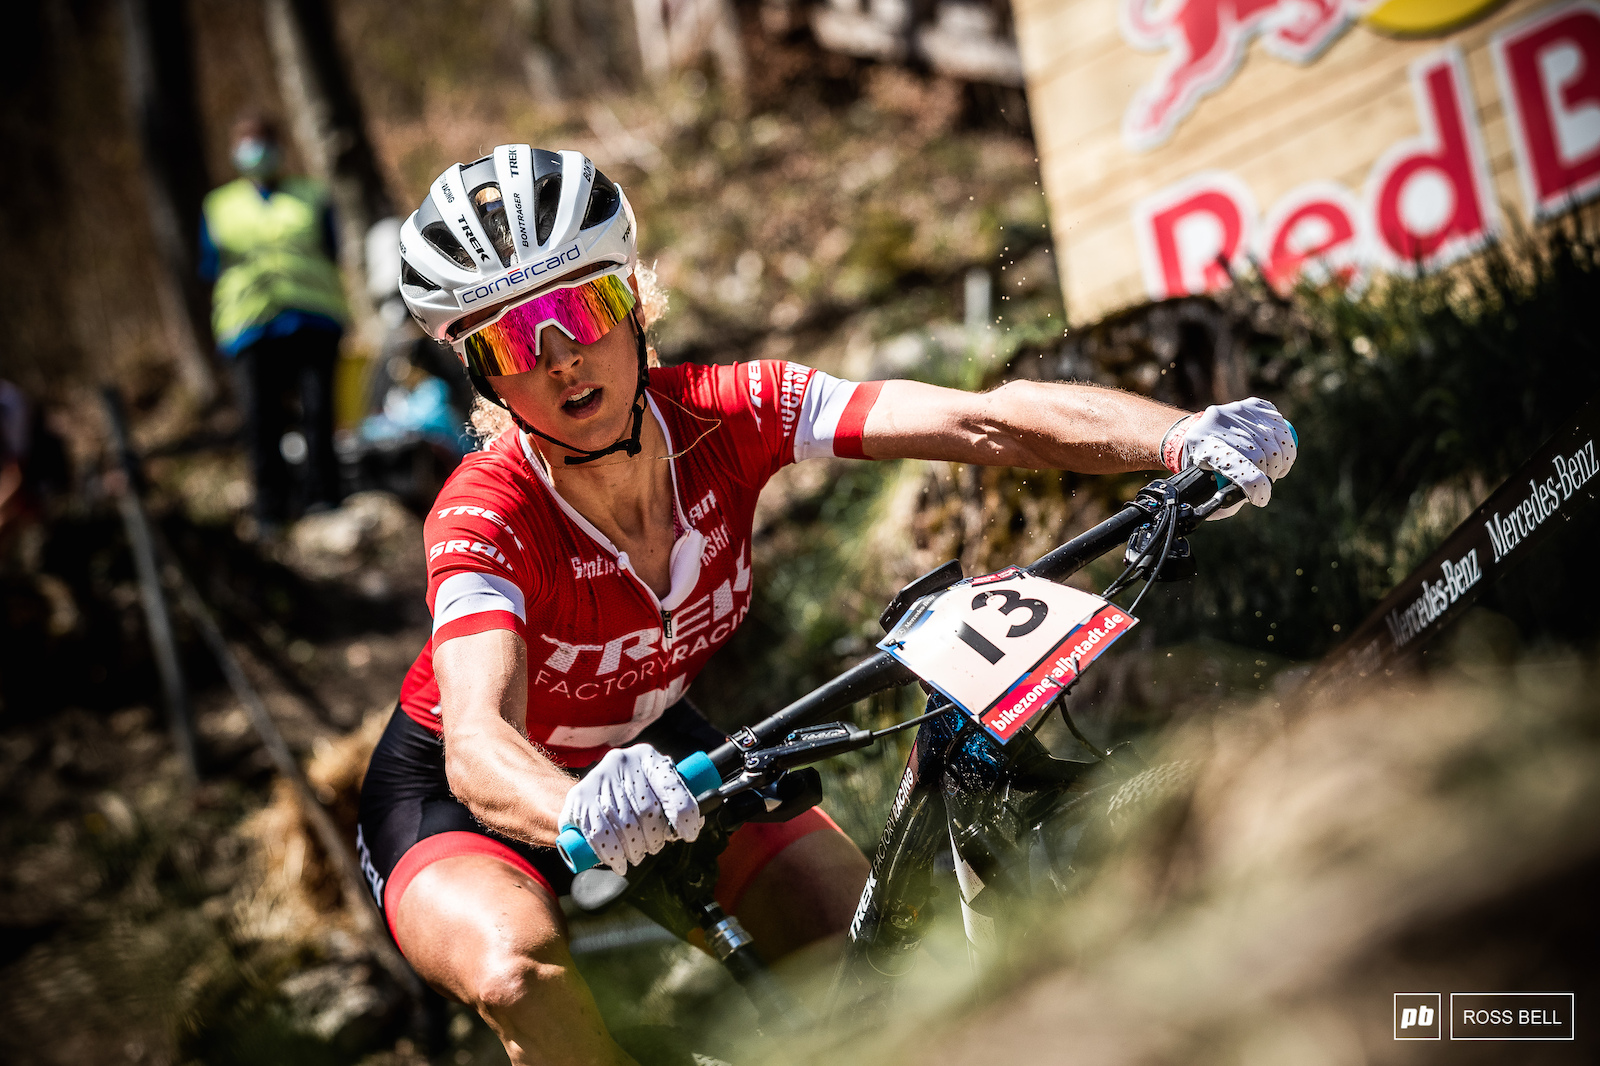 Jolanda Neff is always one of the most exciting riders to watch when wheels are pointing down the hill.